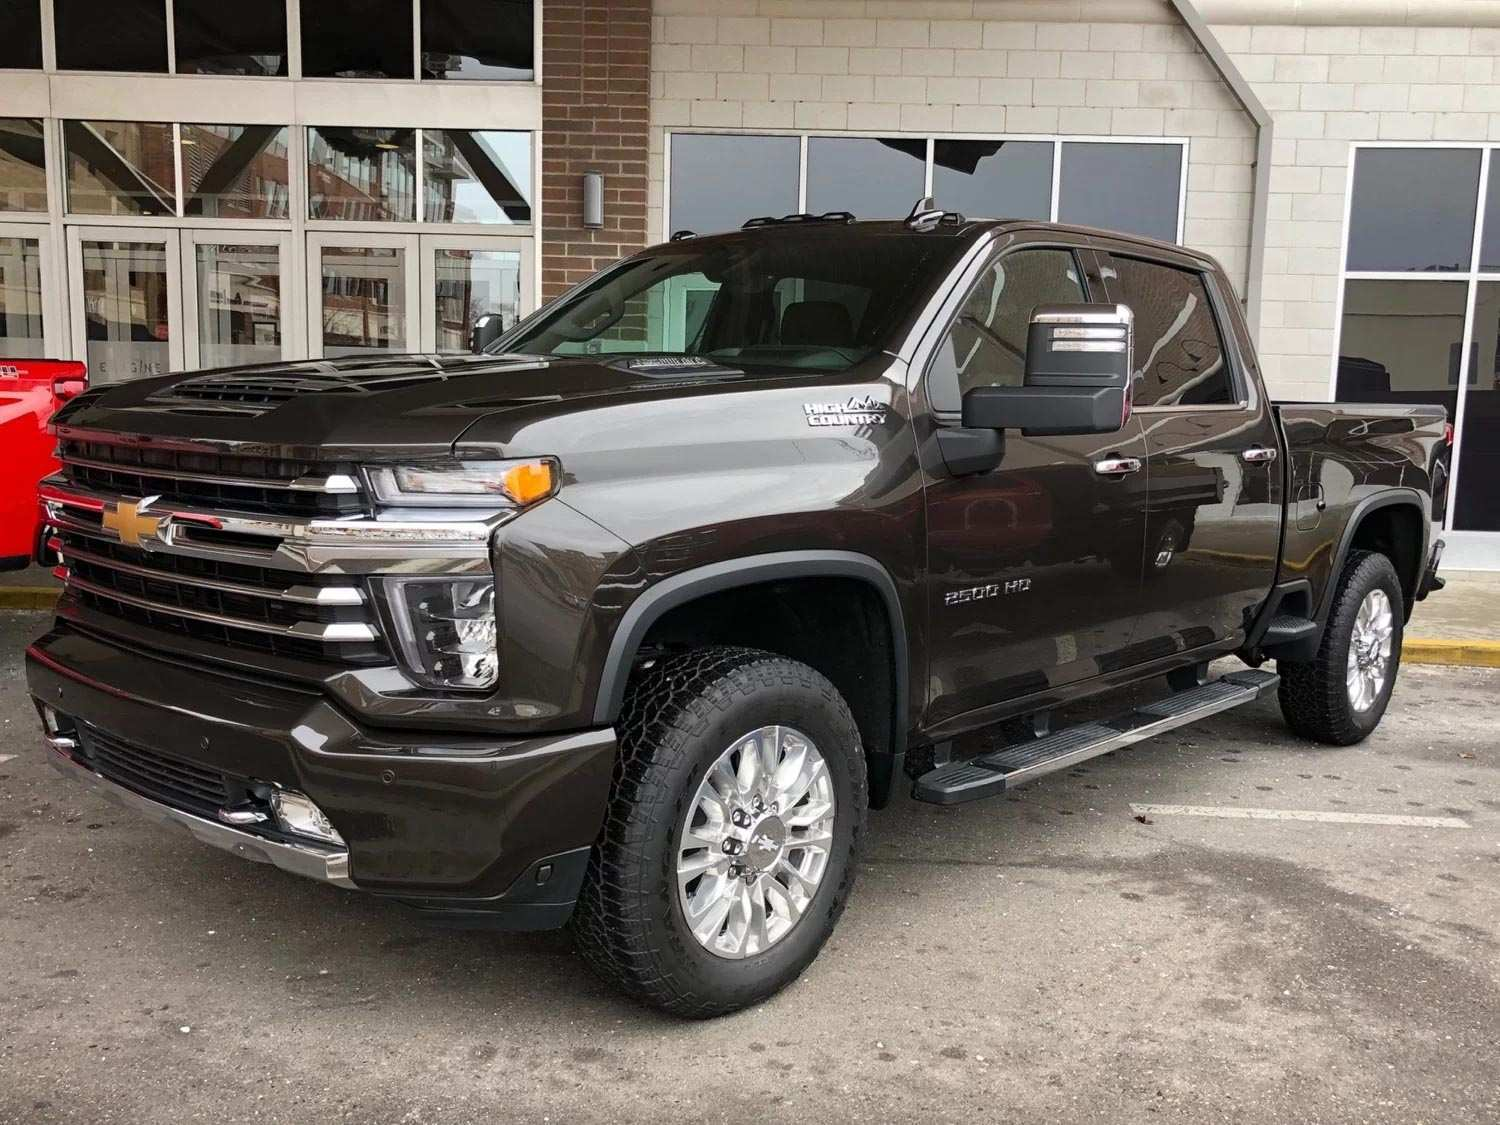 11 Great 2020 Chevy Duramax Interior with 2020 Chevy Duramax